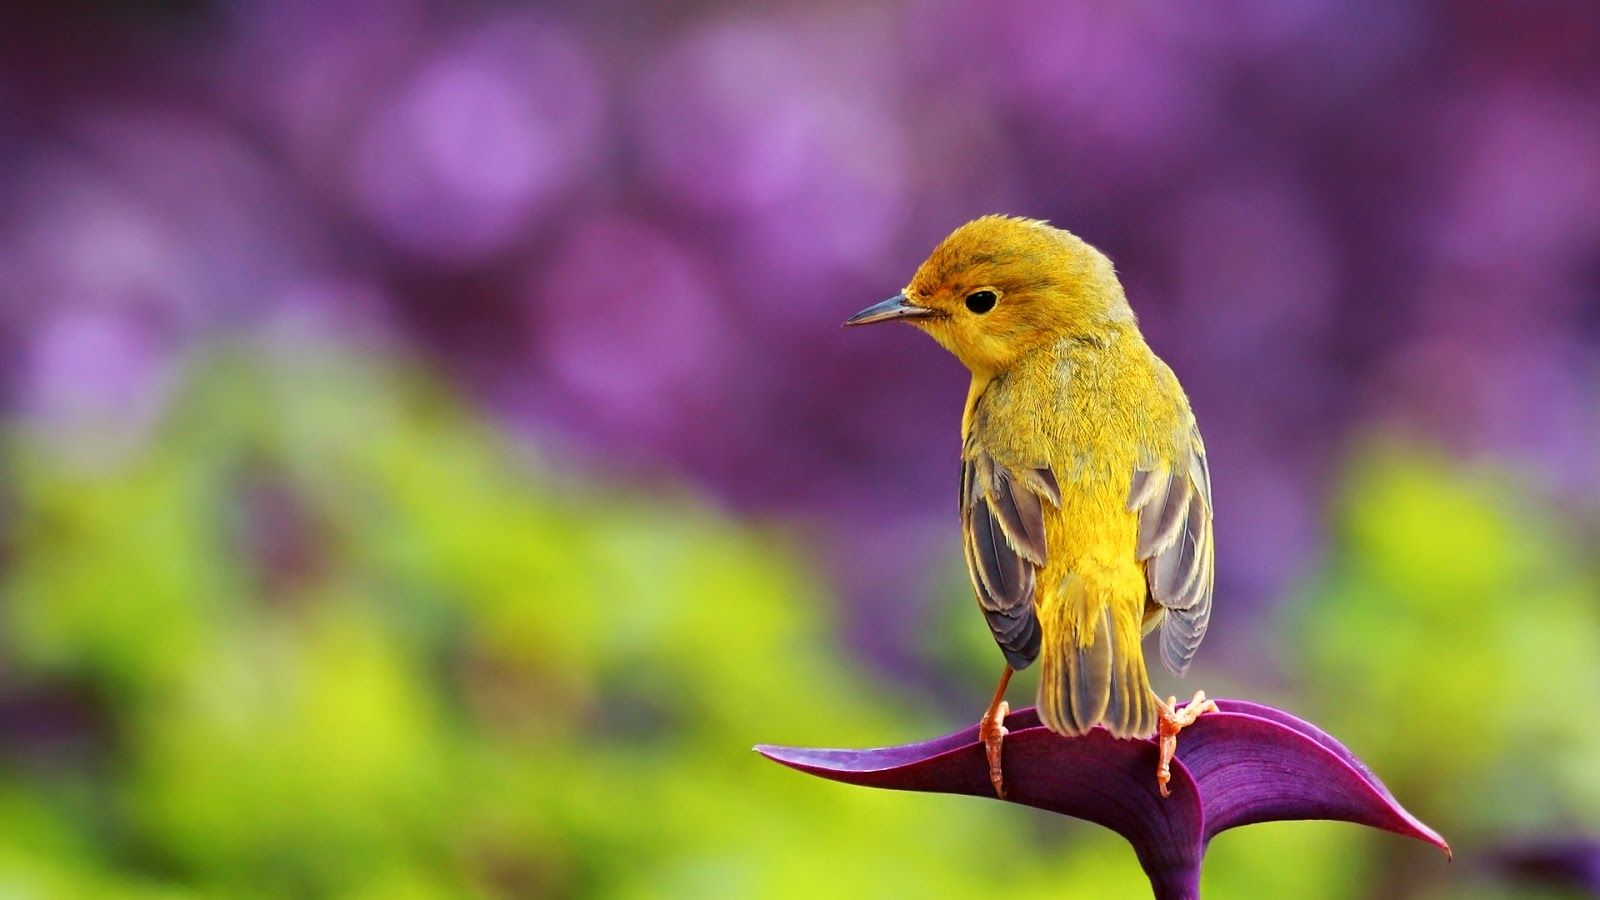 Beautiful hd wallpapers birds wallpaper hd 1080p all - All animals hd wallpapers ...